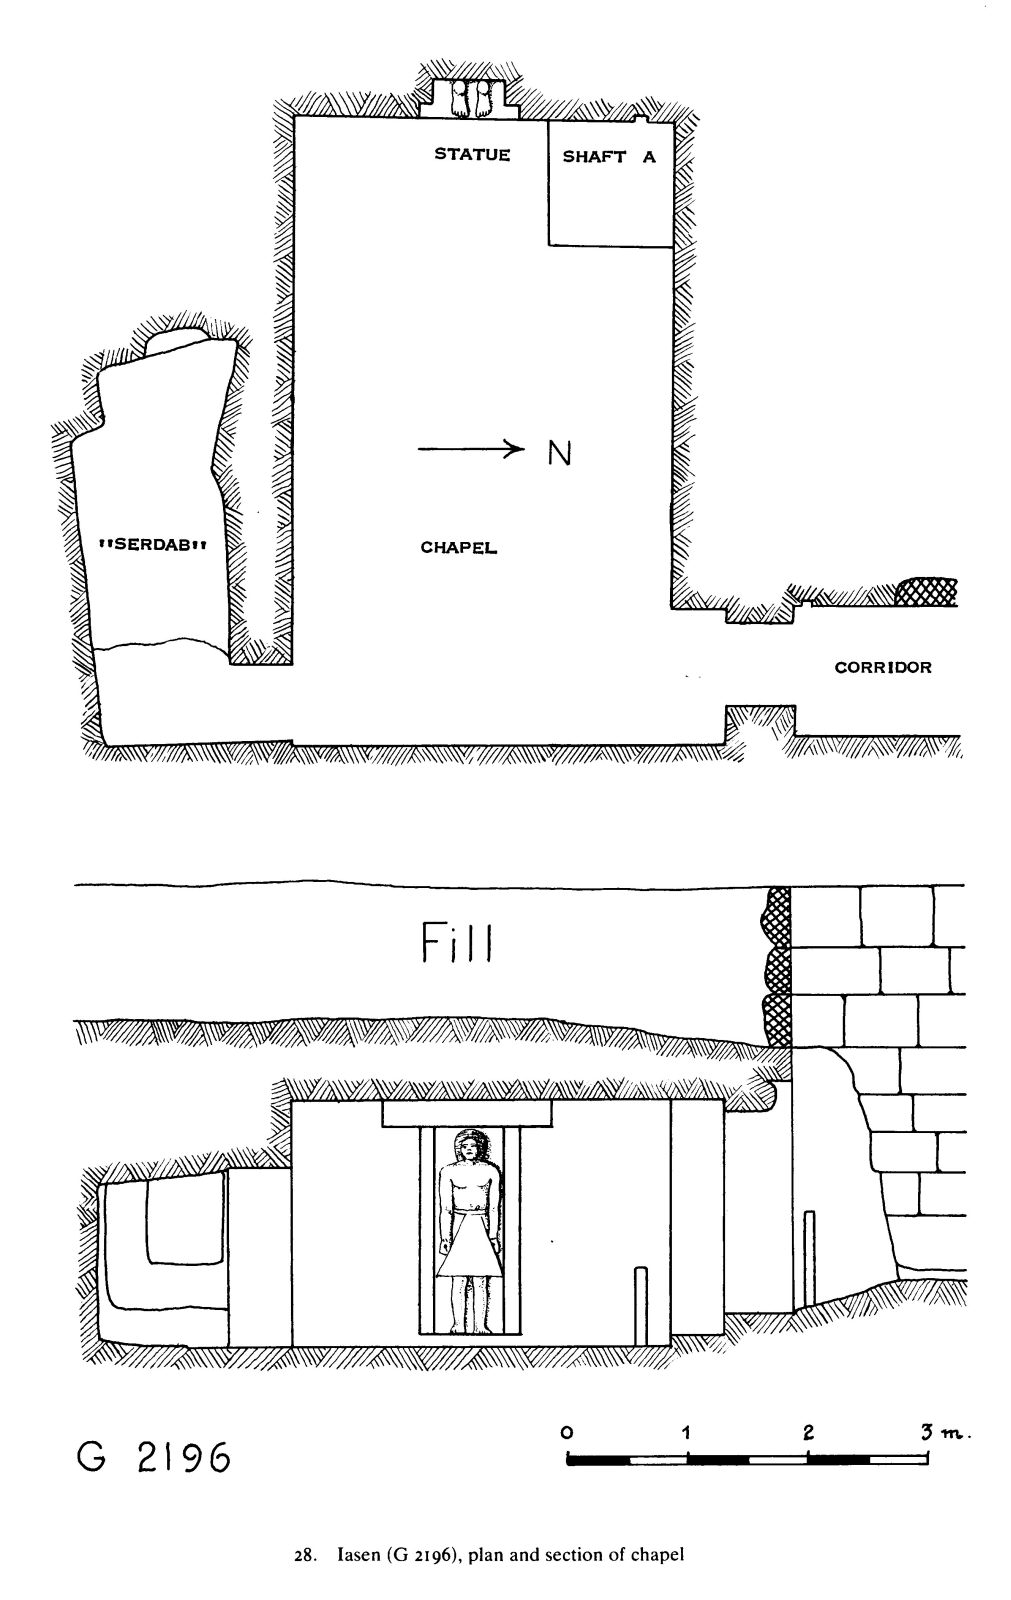 Maps and plans: G 2196, Plan and section of chapel